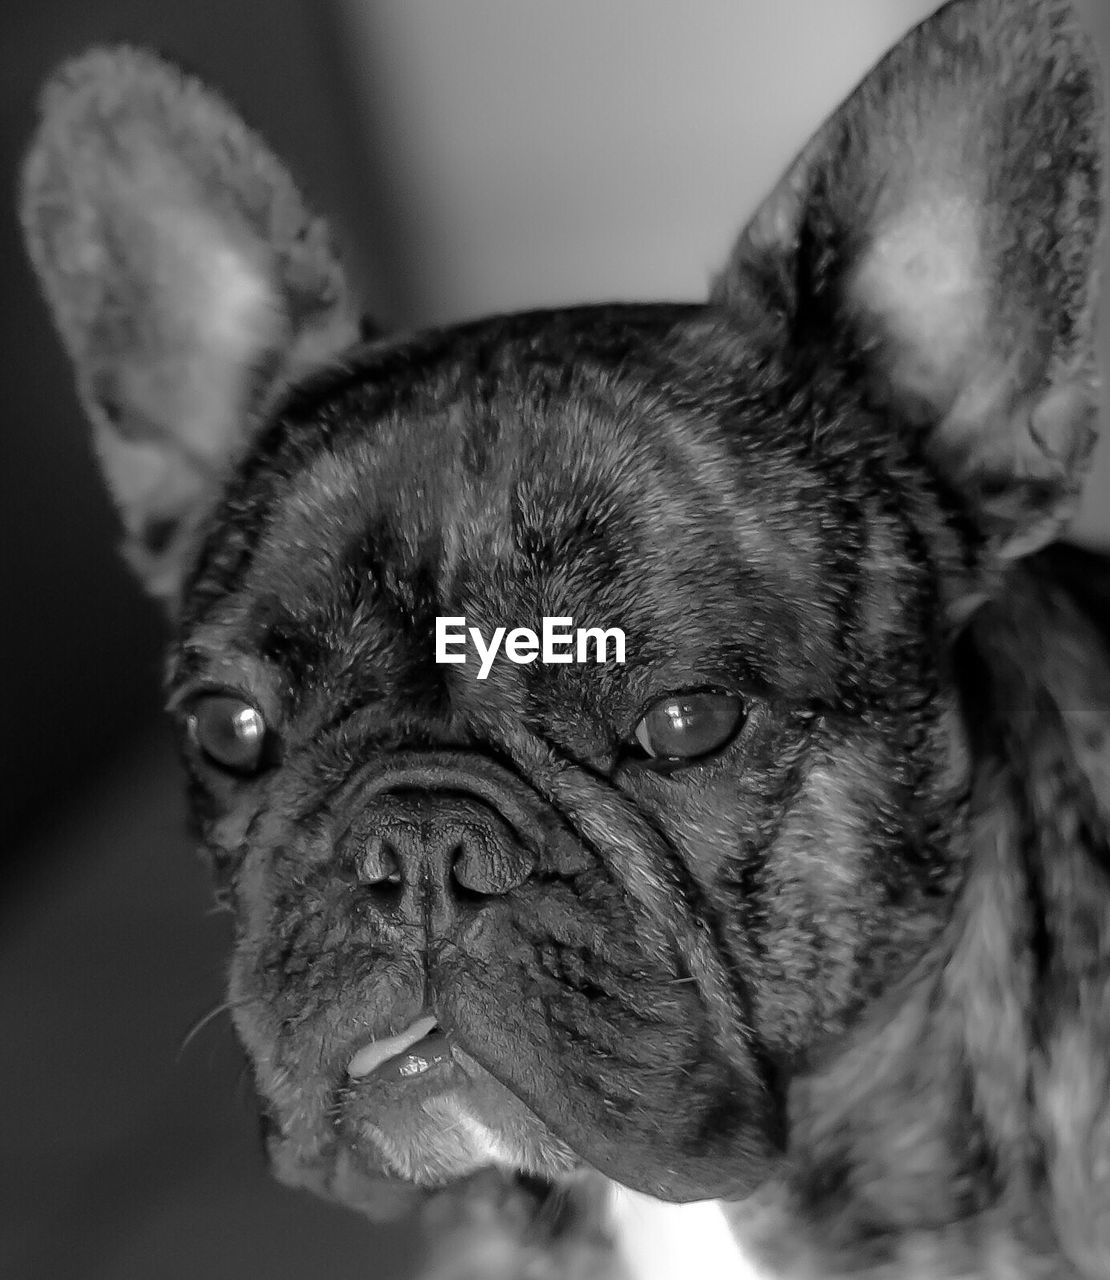 one animal, animal themes, mammal, domestic, pets, animal, domestic animals, vertebrate, canine, dog, close-up, indoors, portrait, focus on foreground, looking at camera, animal body part, no people, animal head, pug, lap dog, small, whisker, animal eye